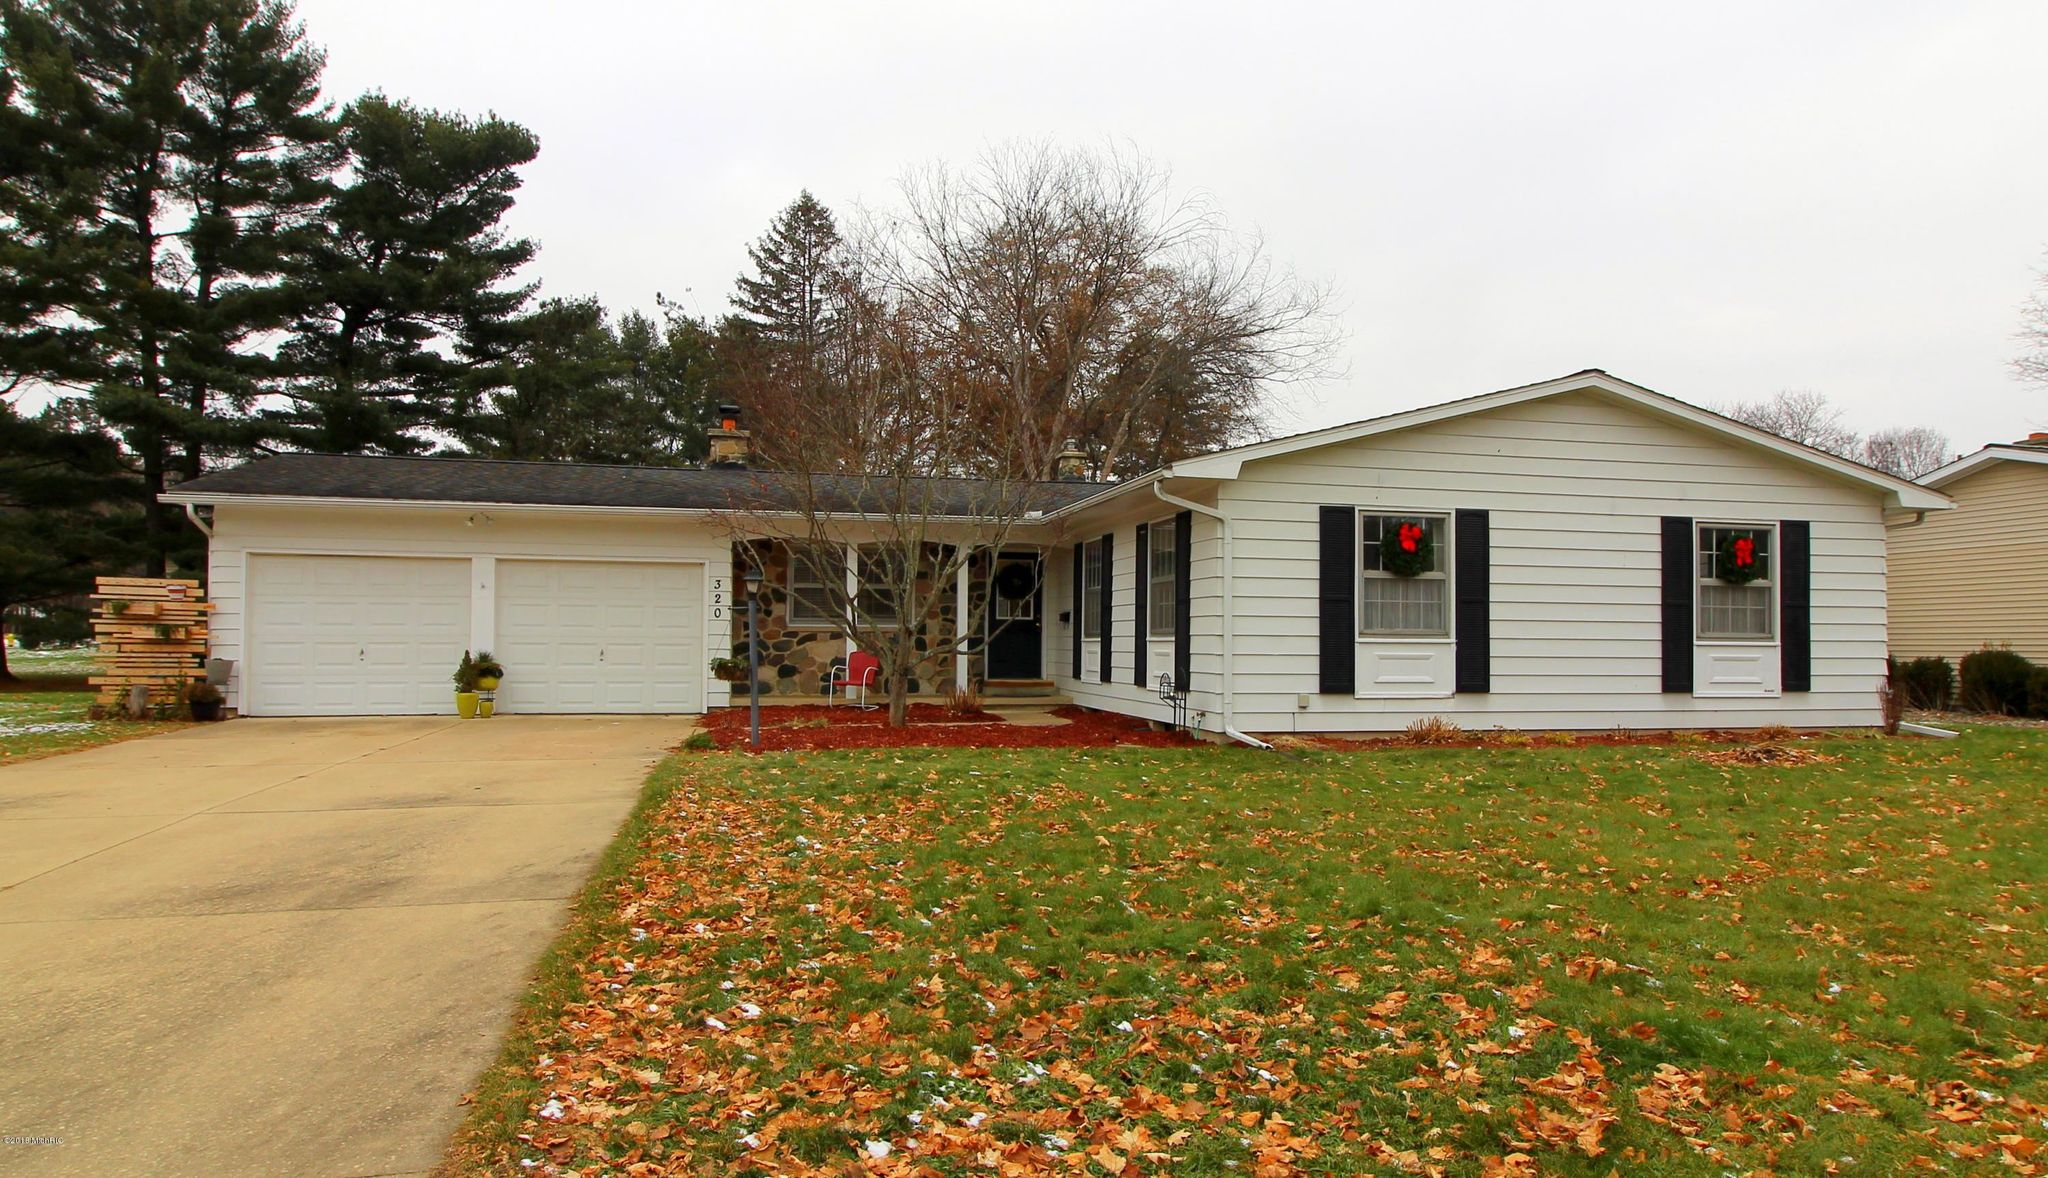 320 S Moorland Dr Battle Creek Mi 49015 3 Bed 2 Bath Single Family Home Mls 18057886 19 Photos Trulia